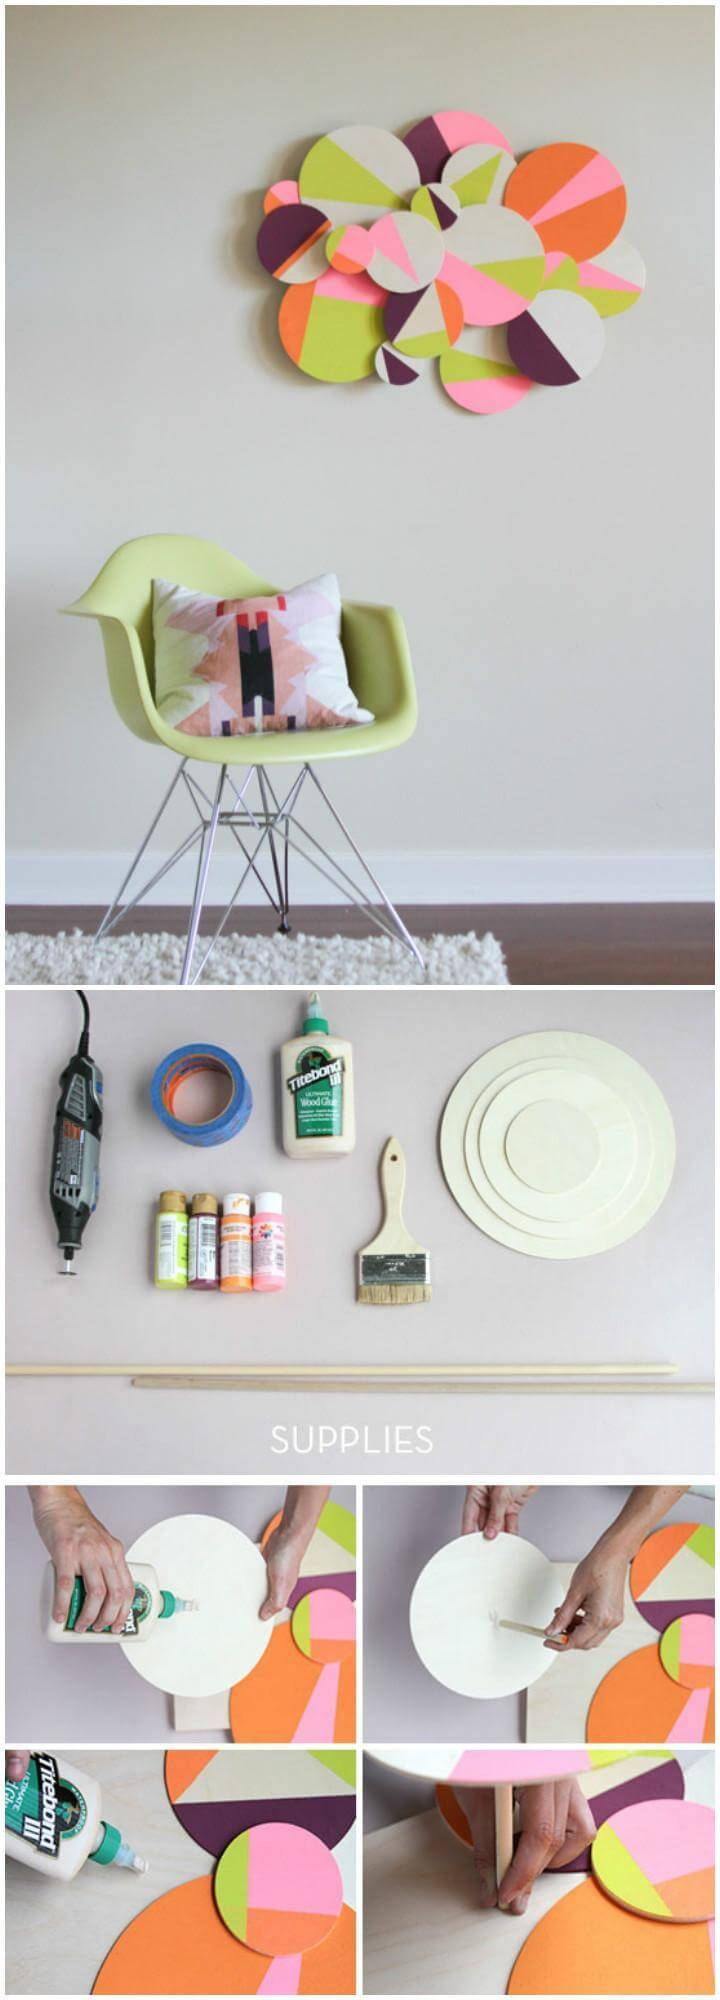 DIY Colorful 3D Geometric Wall Art